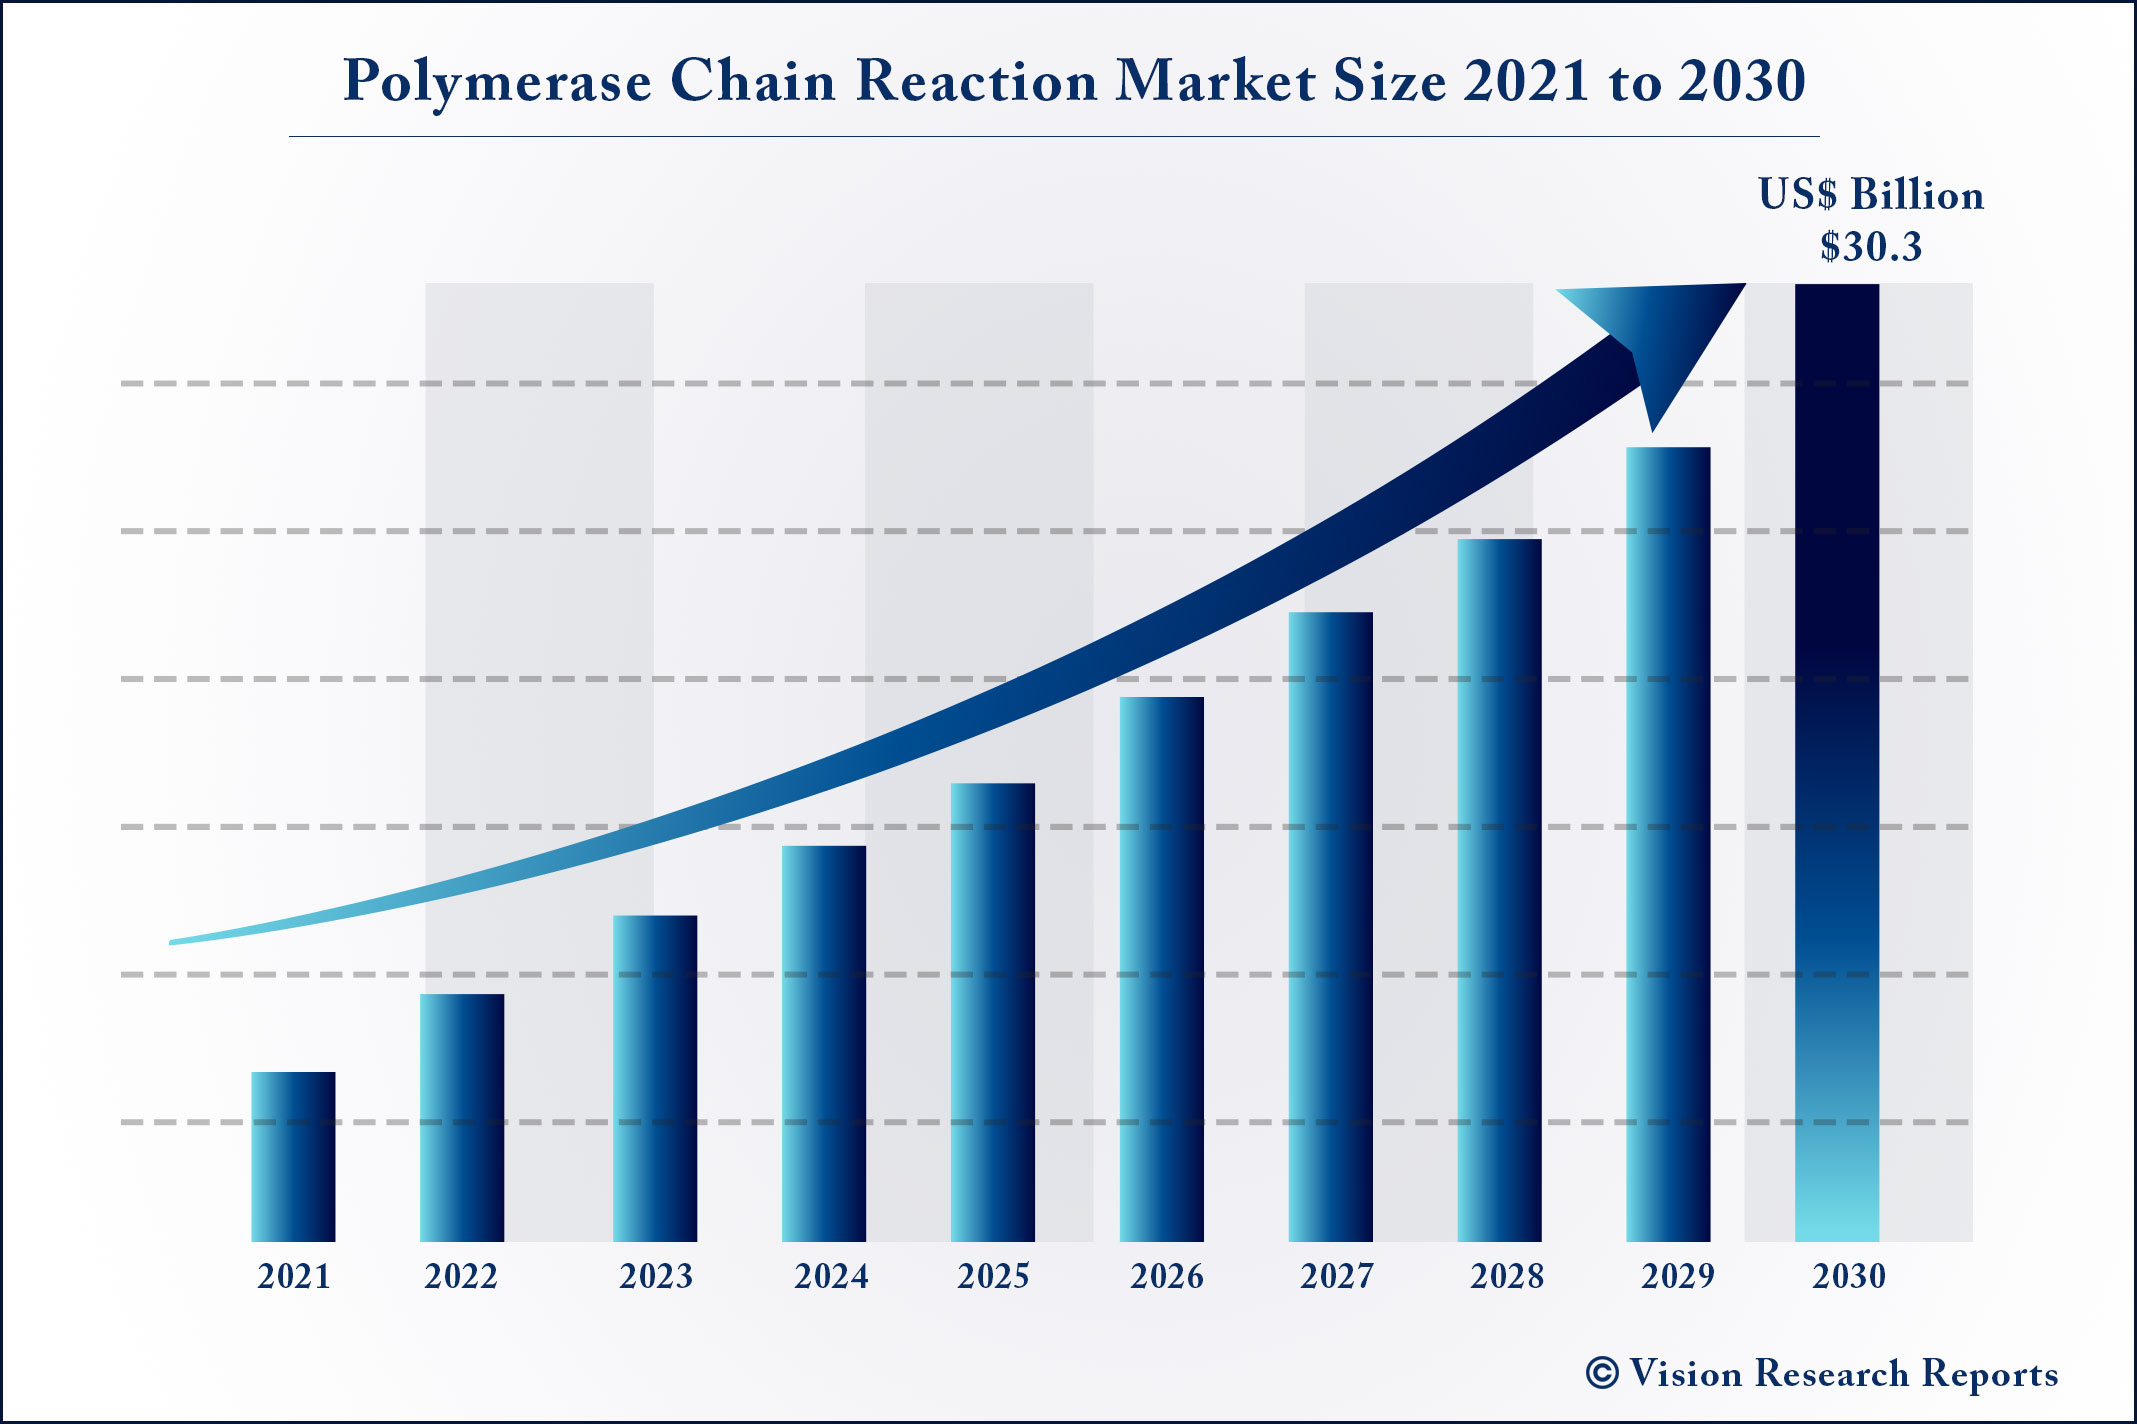 Polymerase Chain Reaction Market Size 2021 to 2030